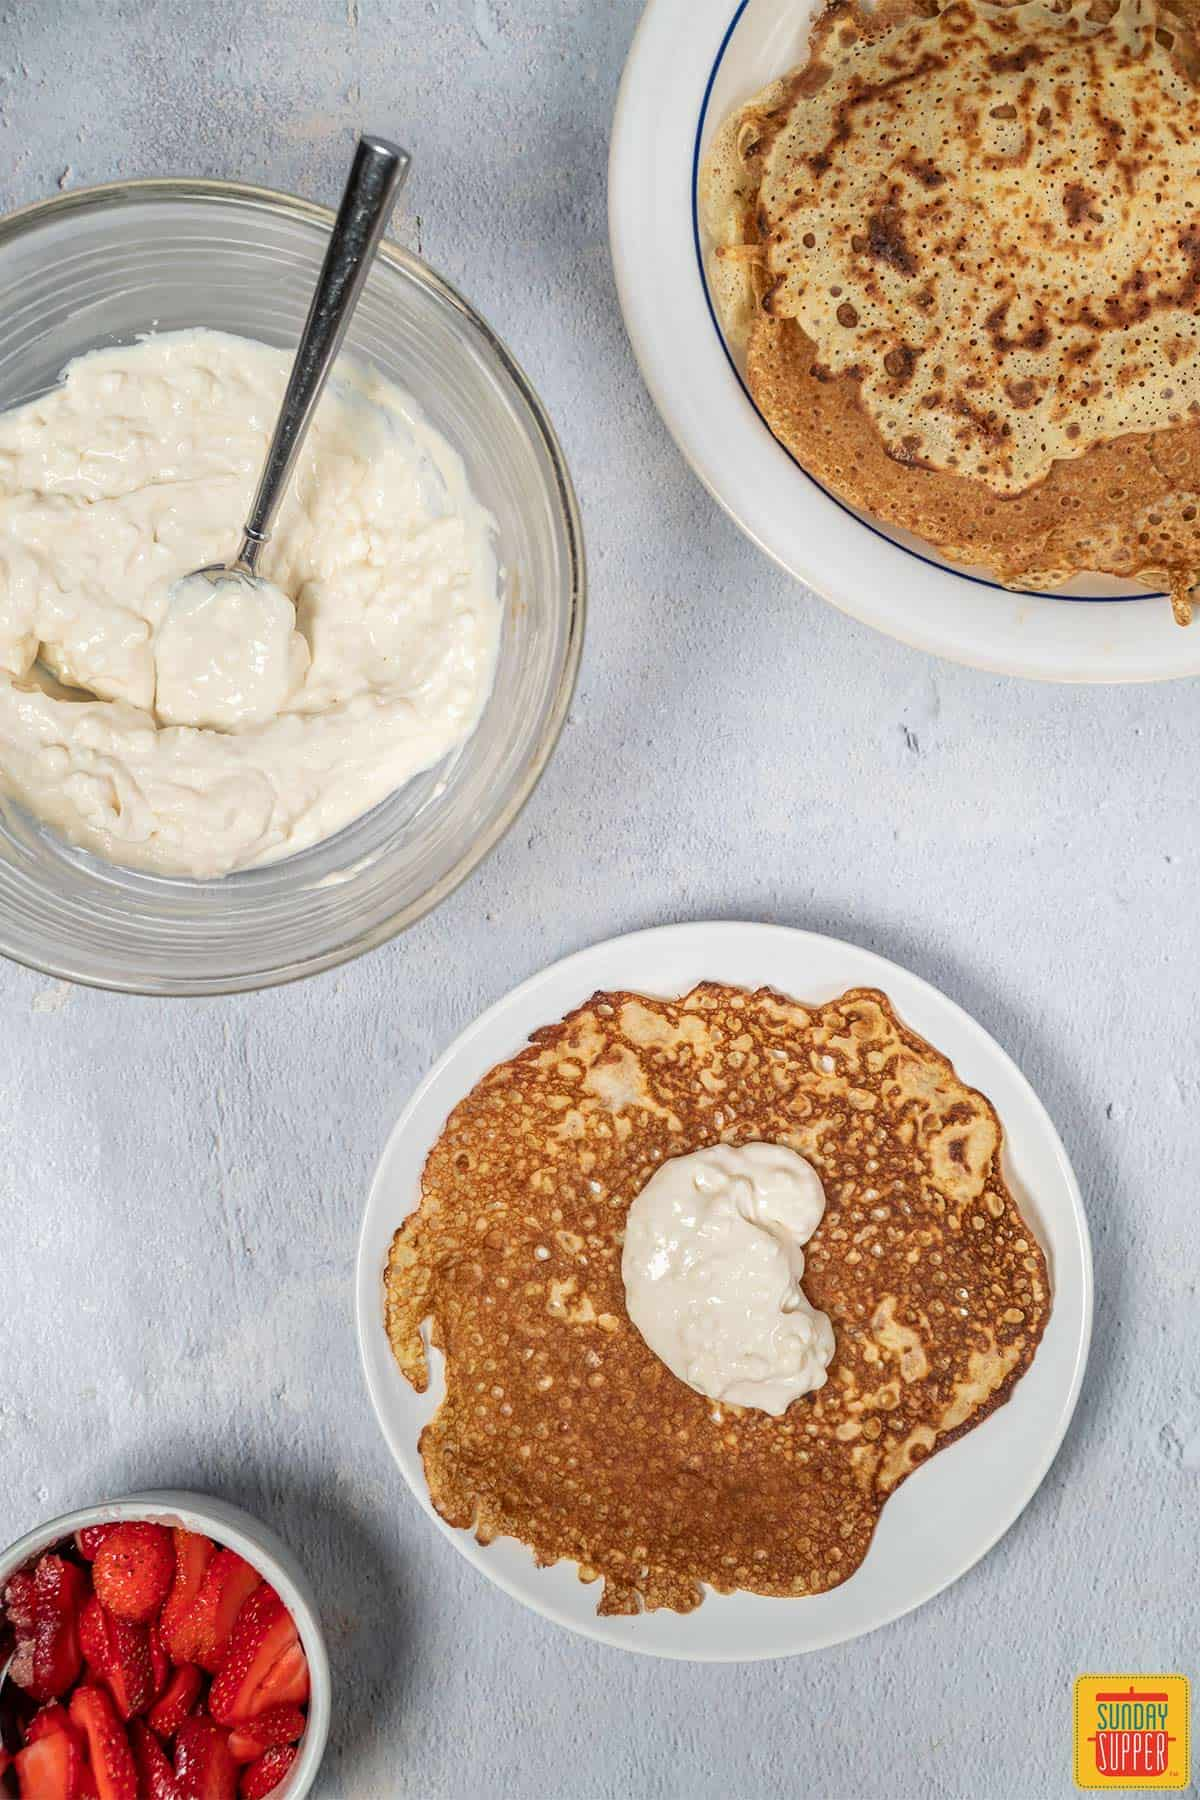 Adding cream to crepes on a plate